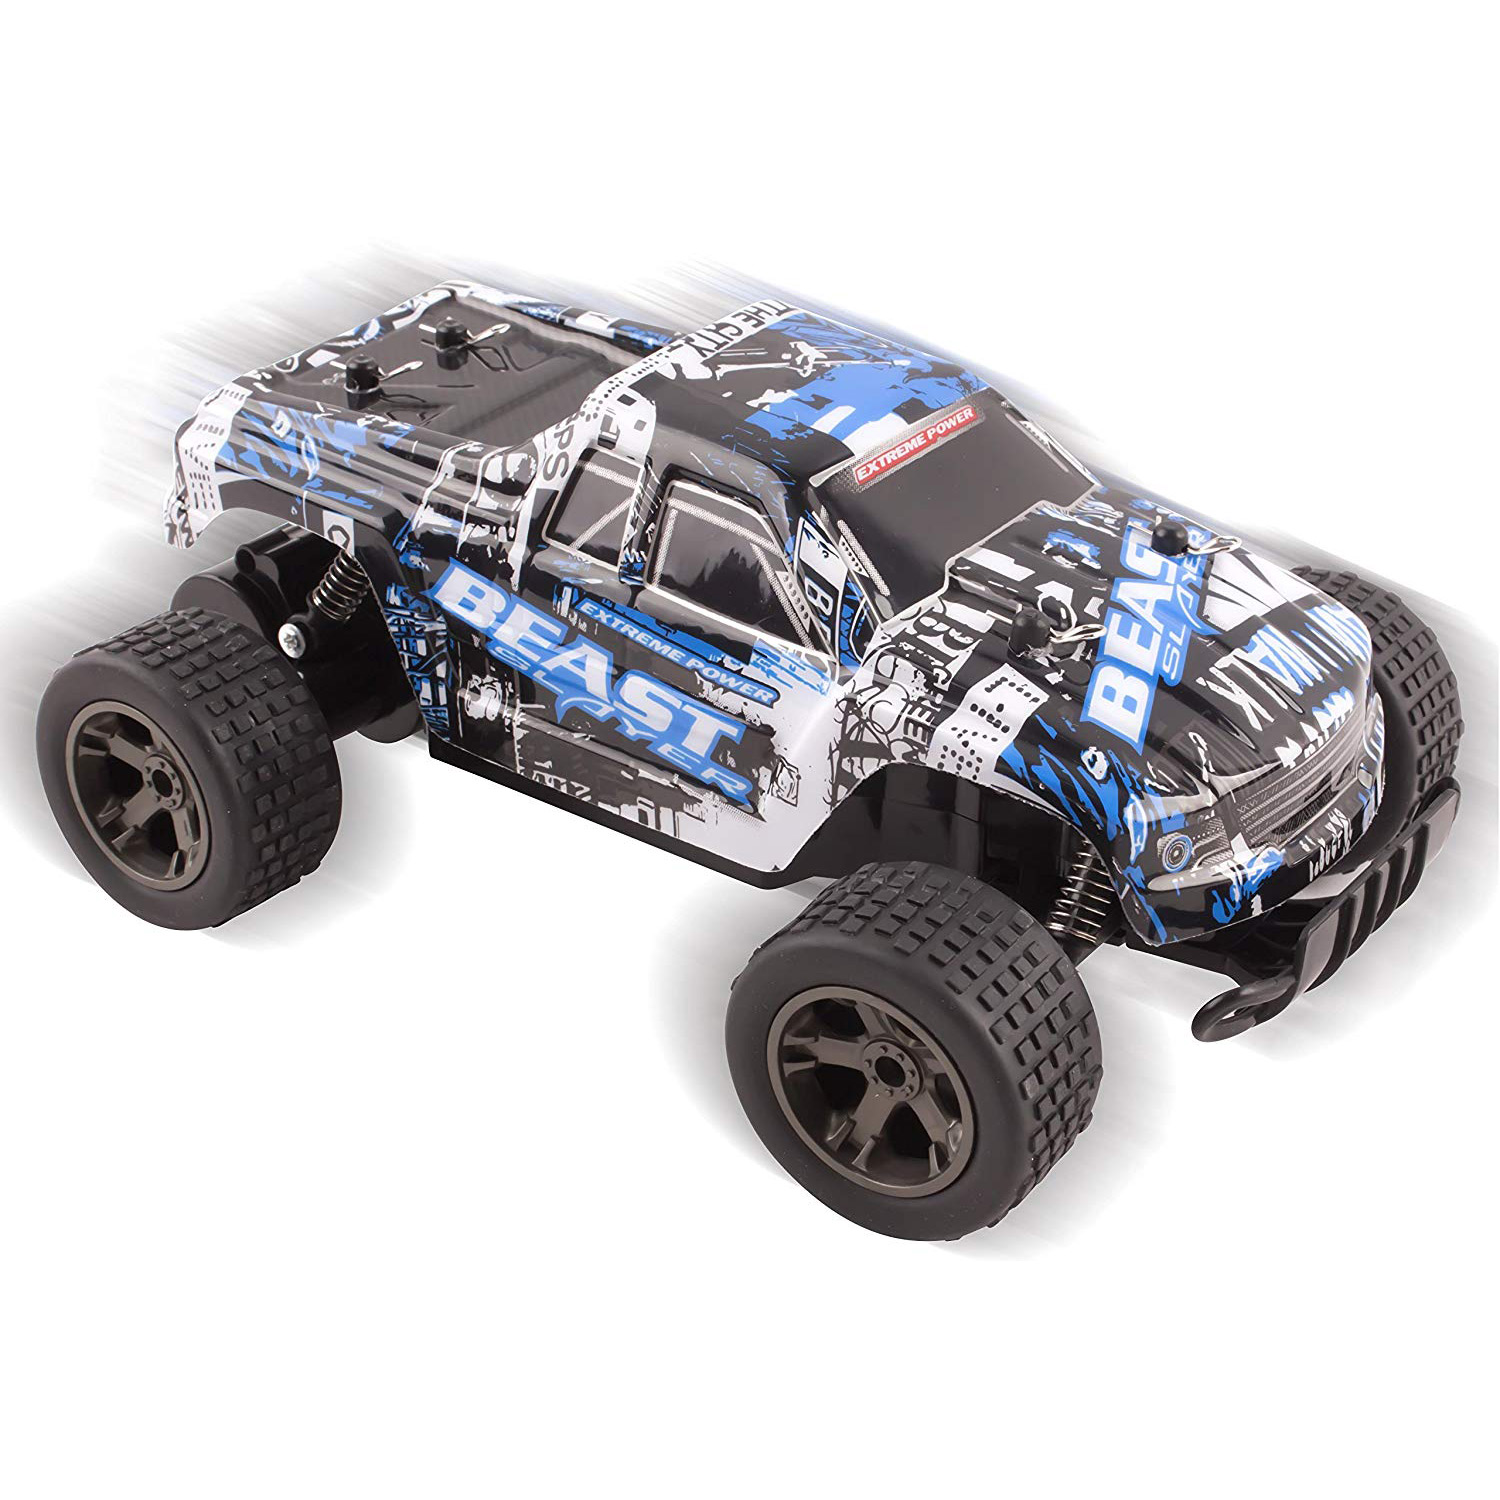 RC Truck Beast Cheetah King Buggy Remote Control 2 4 GHz